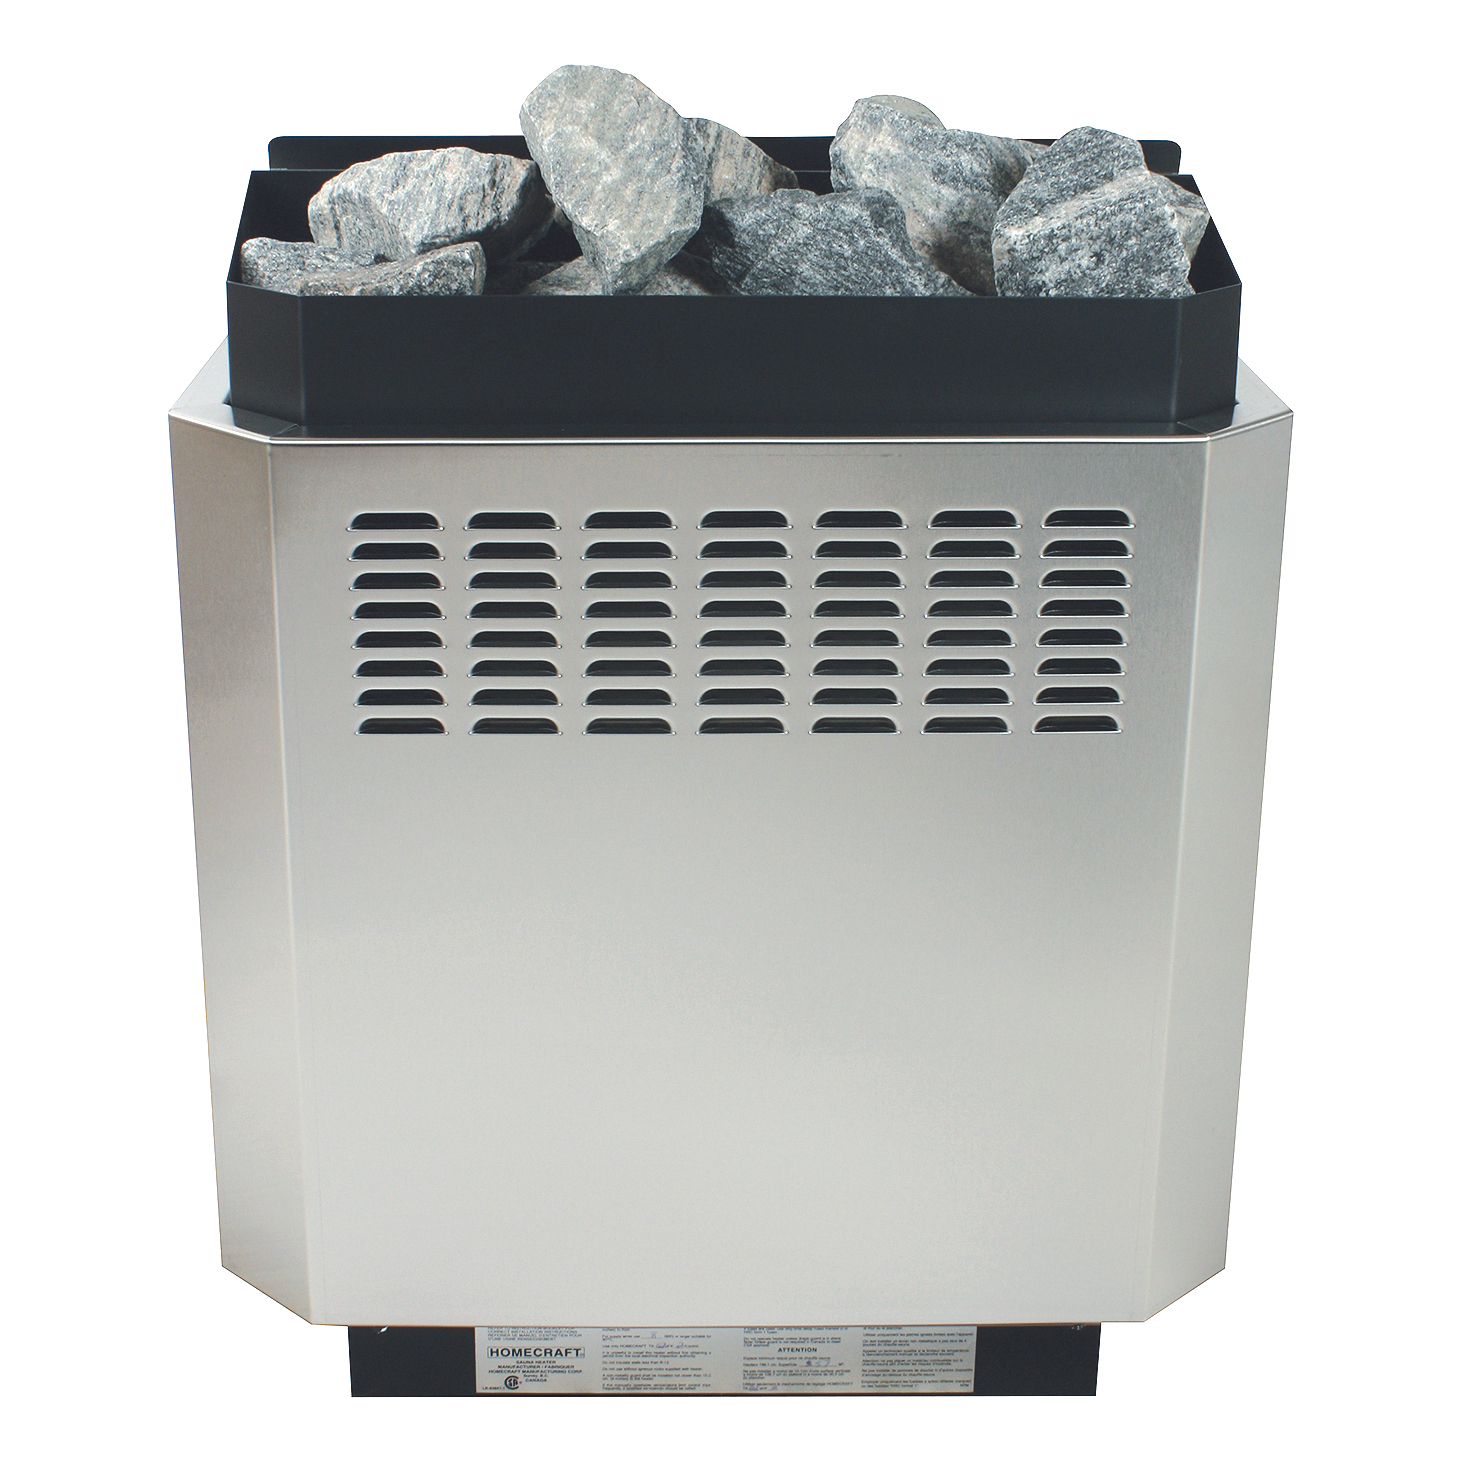 Homecraft-HSH-Heater.jpg